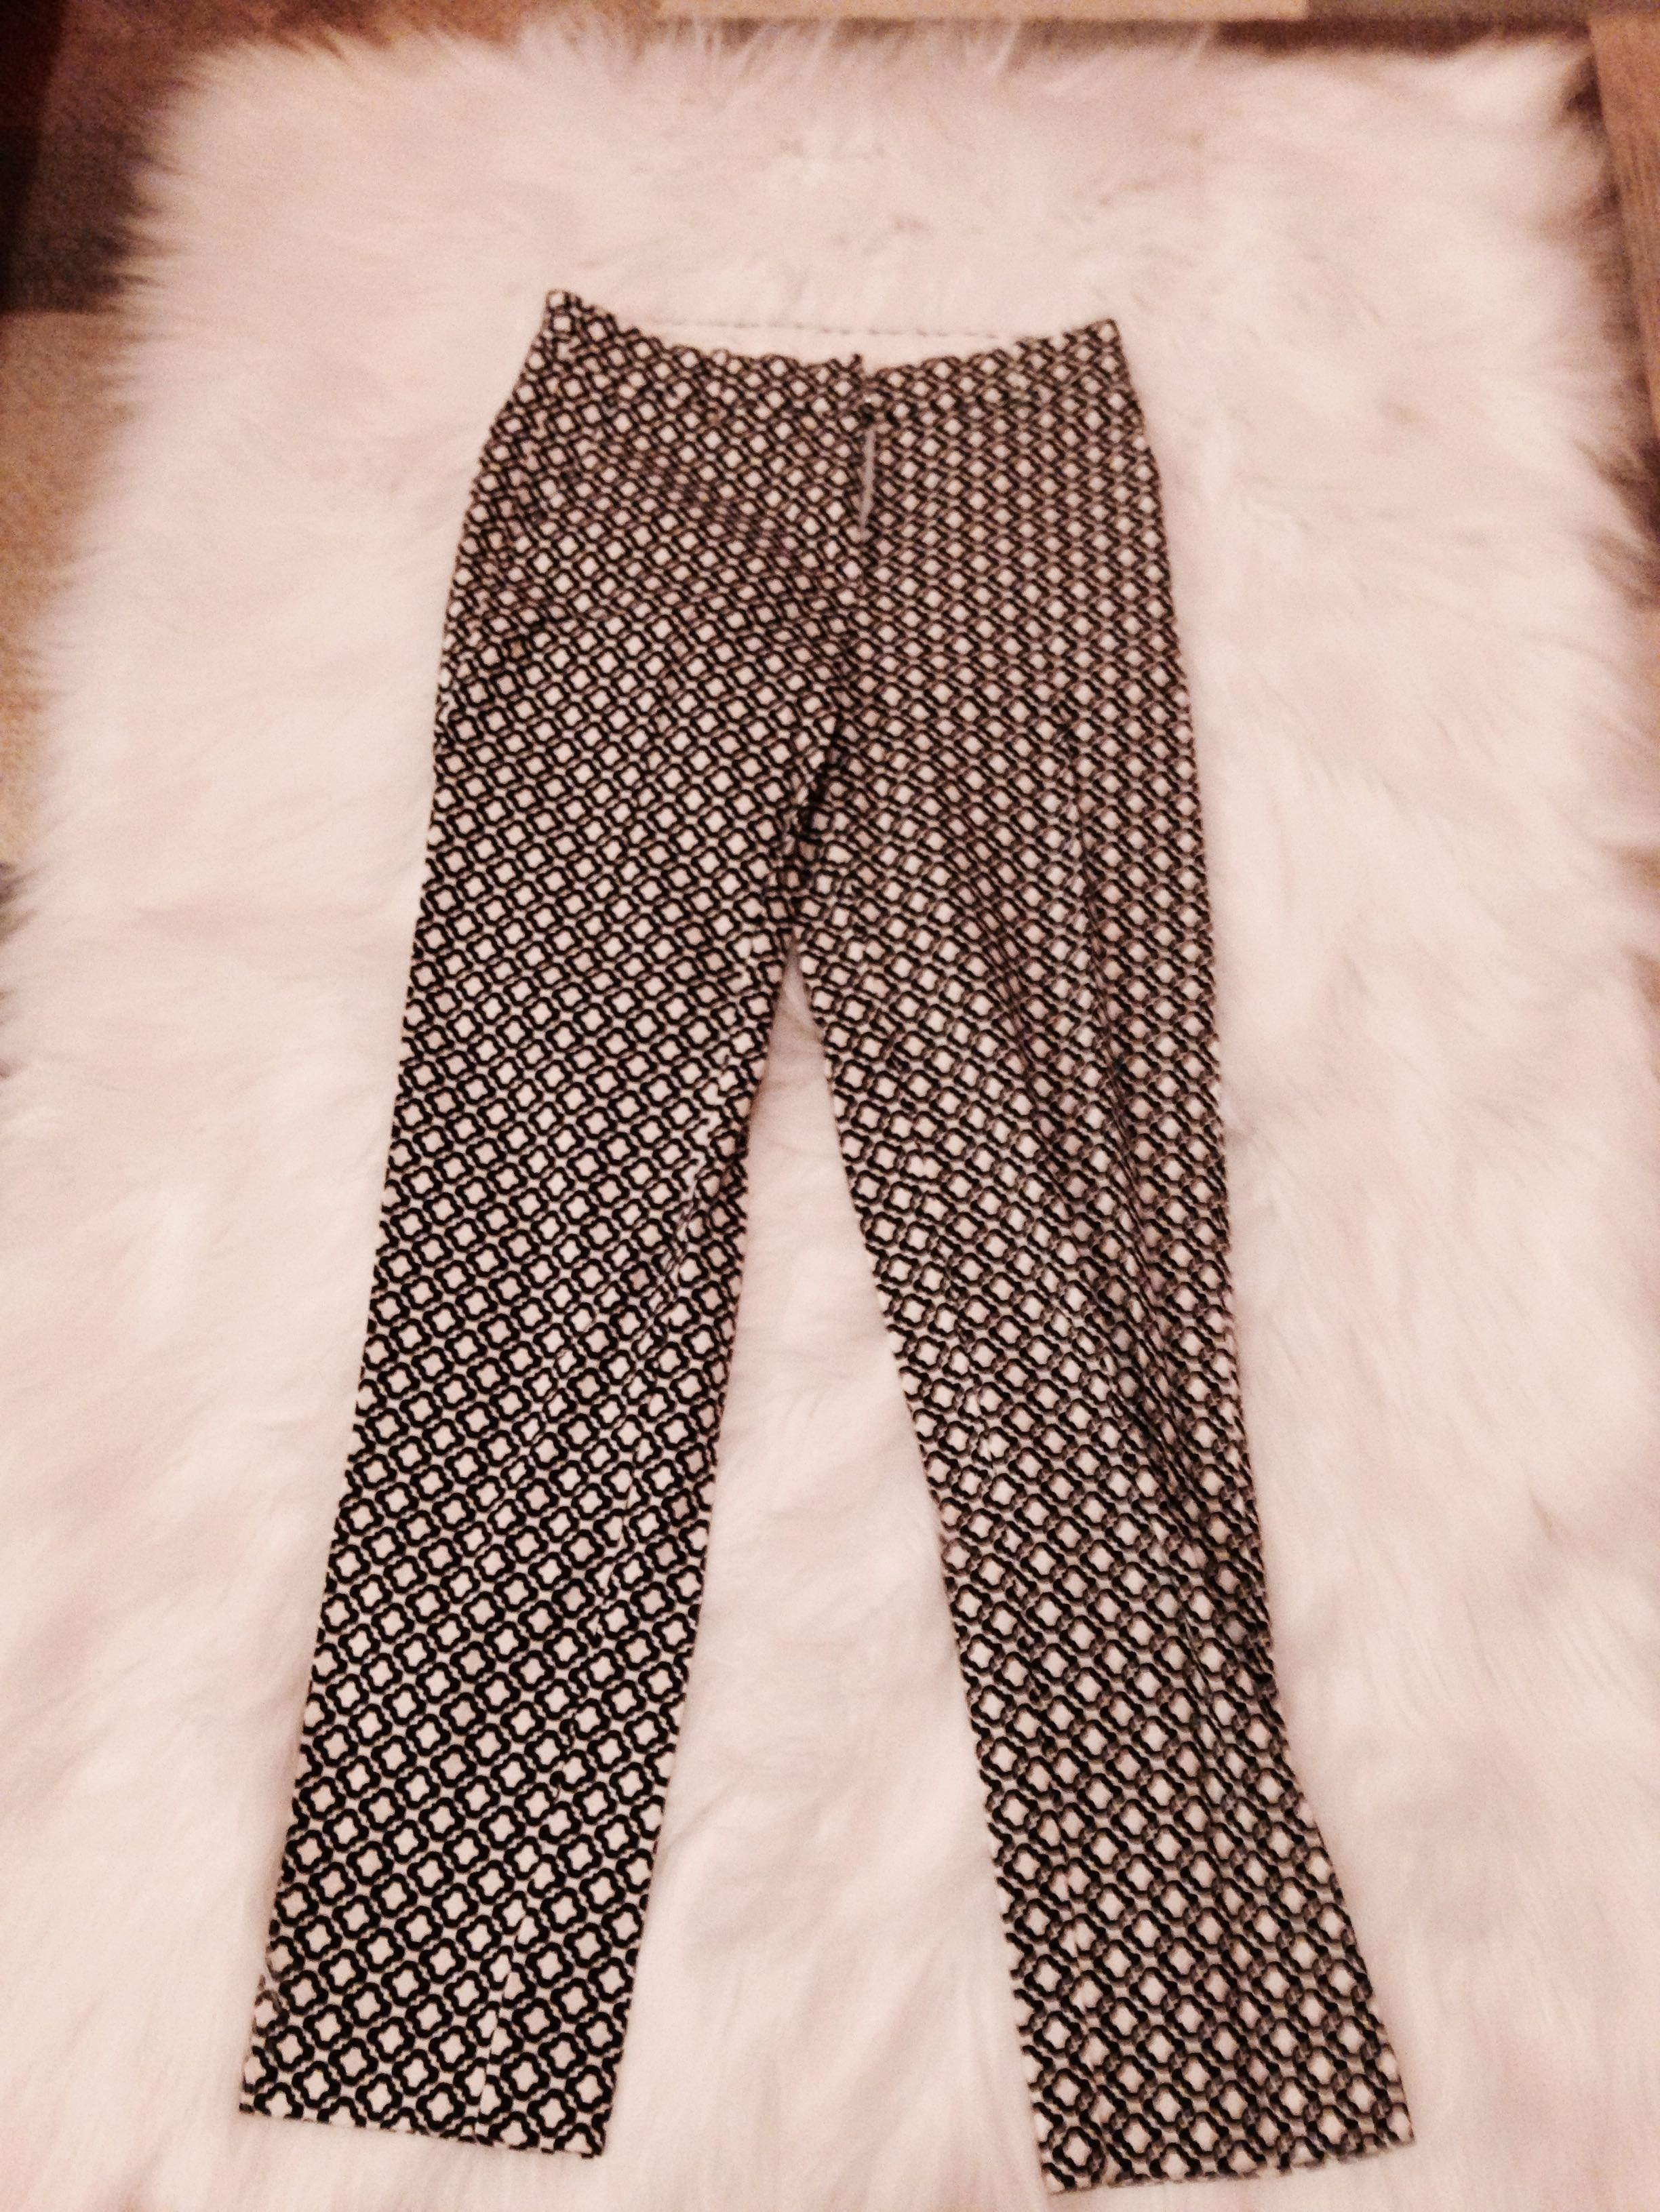 💁🏼patterned pants